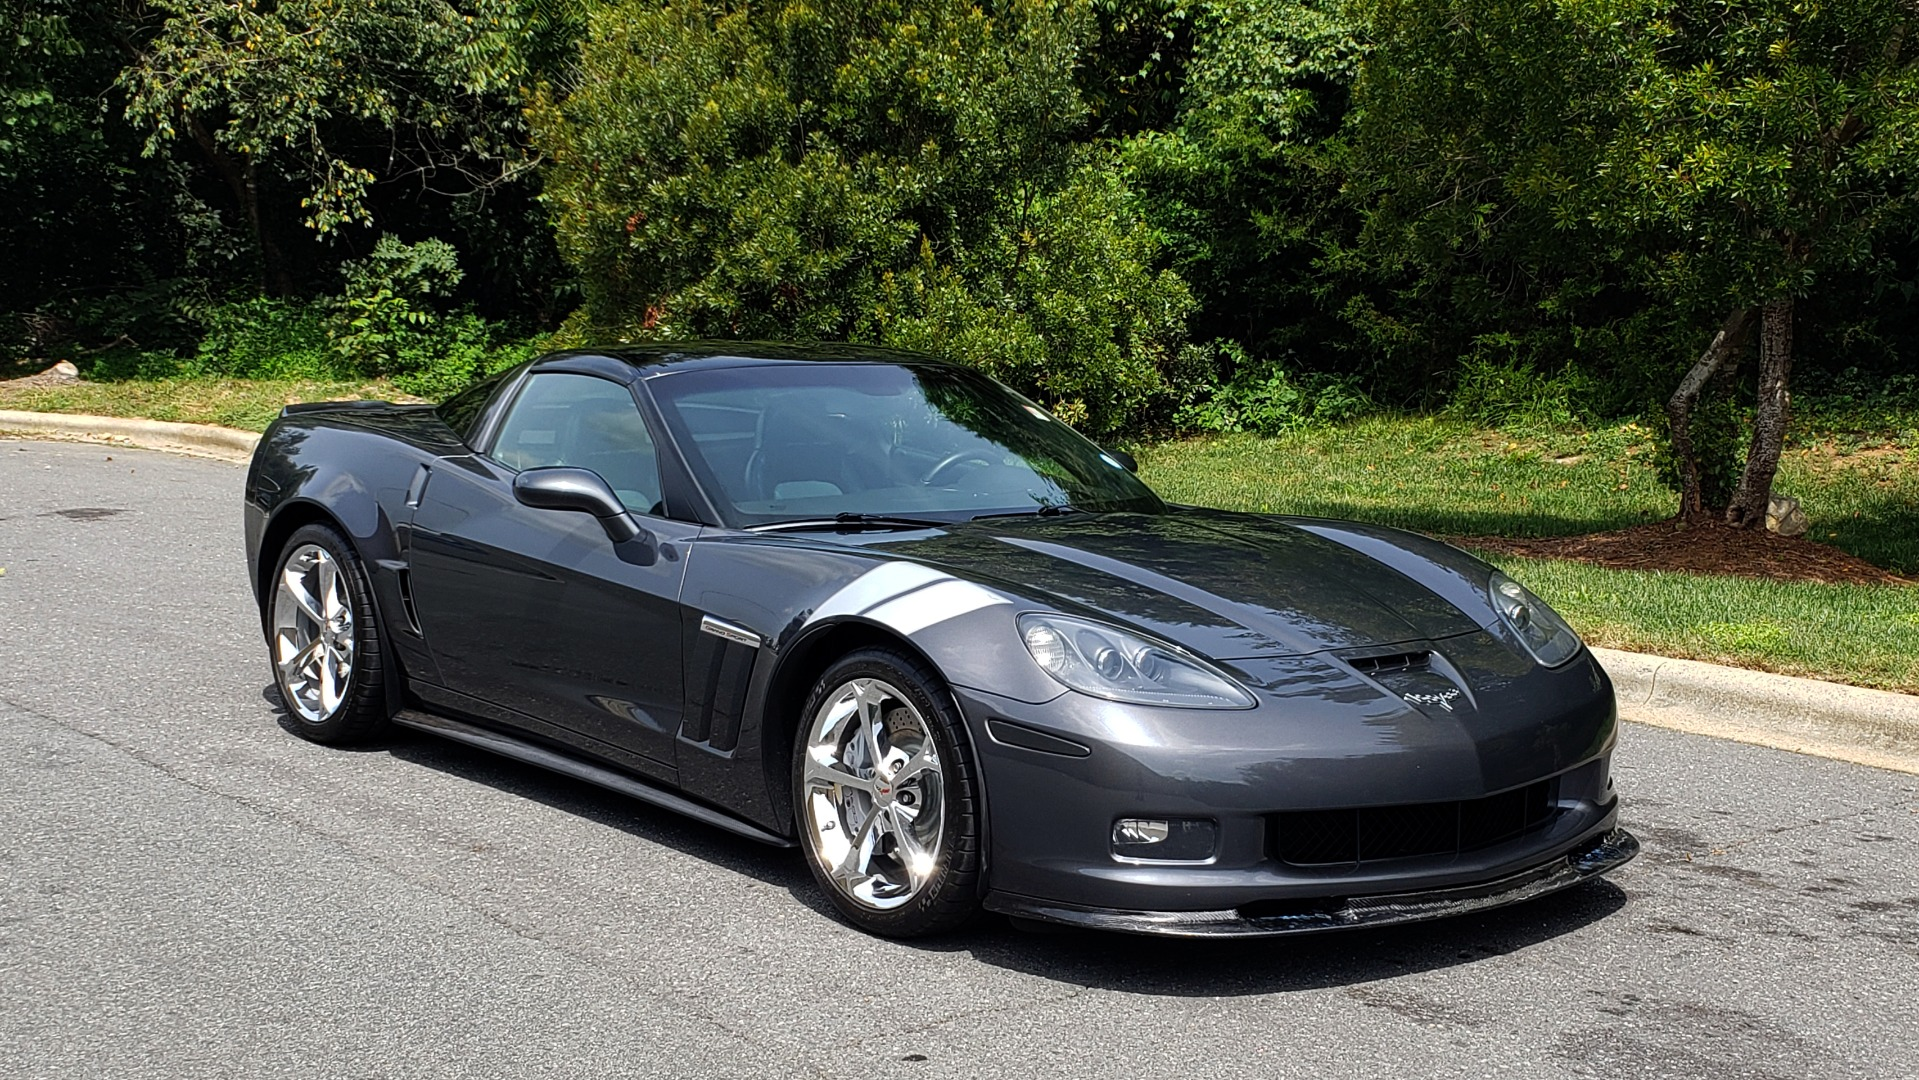 Used 2010 Chevrolet CORVETTE Z16 GRAND SPORT 3LT / HUD / 6.2L V8 / 6-SPD AUTO / NPP EXH for sale Sold at Formula Imports in Charlotte NC 28227 3